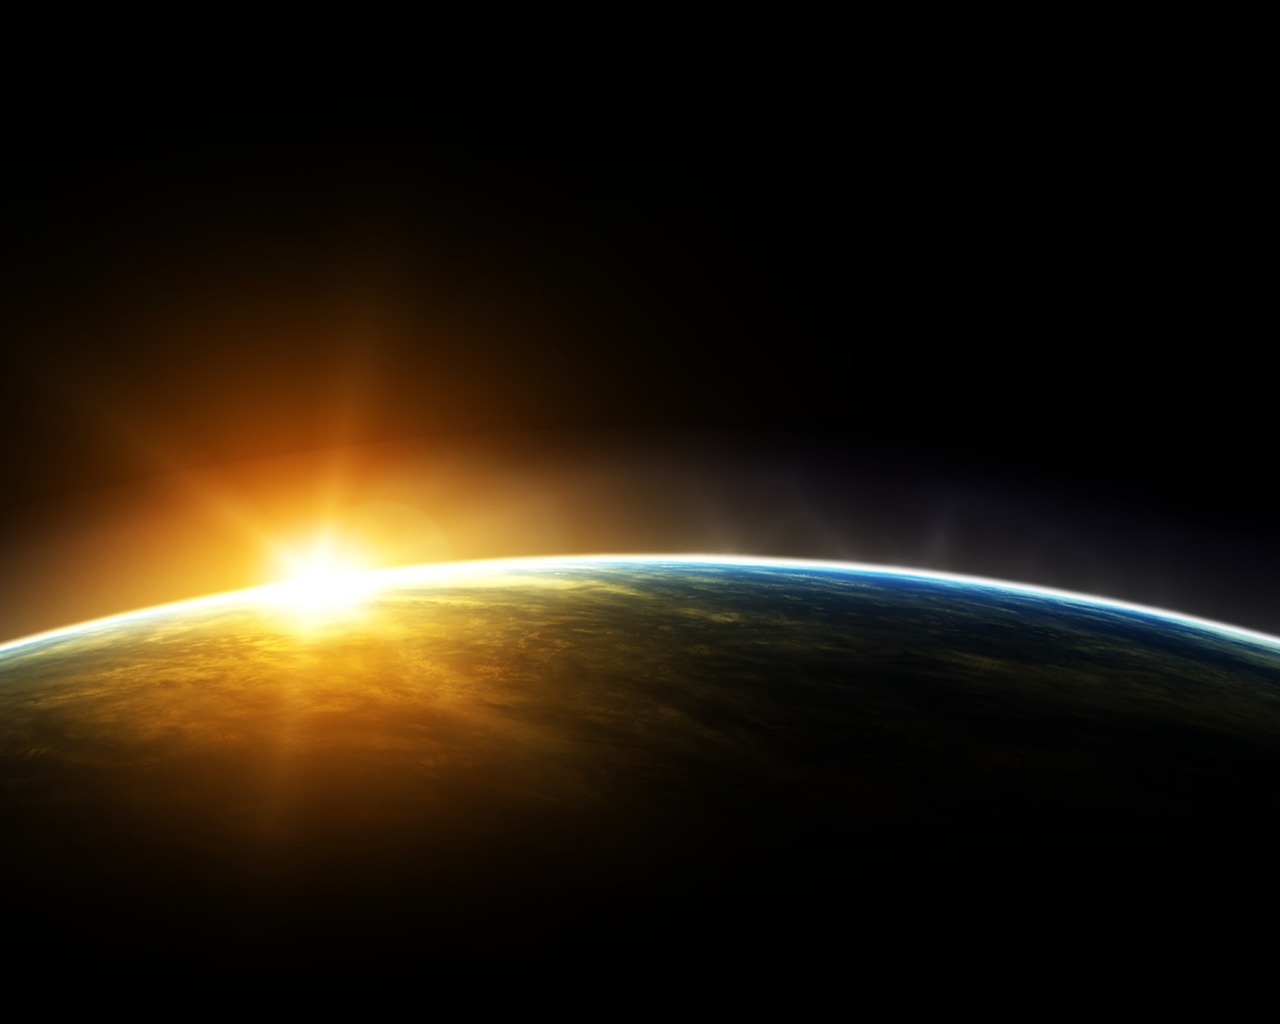 Sunrise_Earth_from_space.jpg